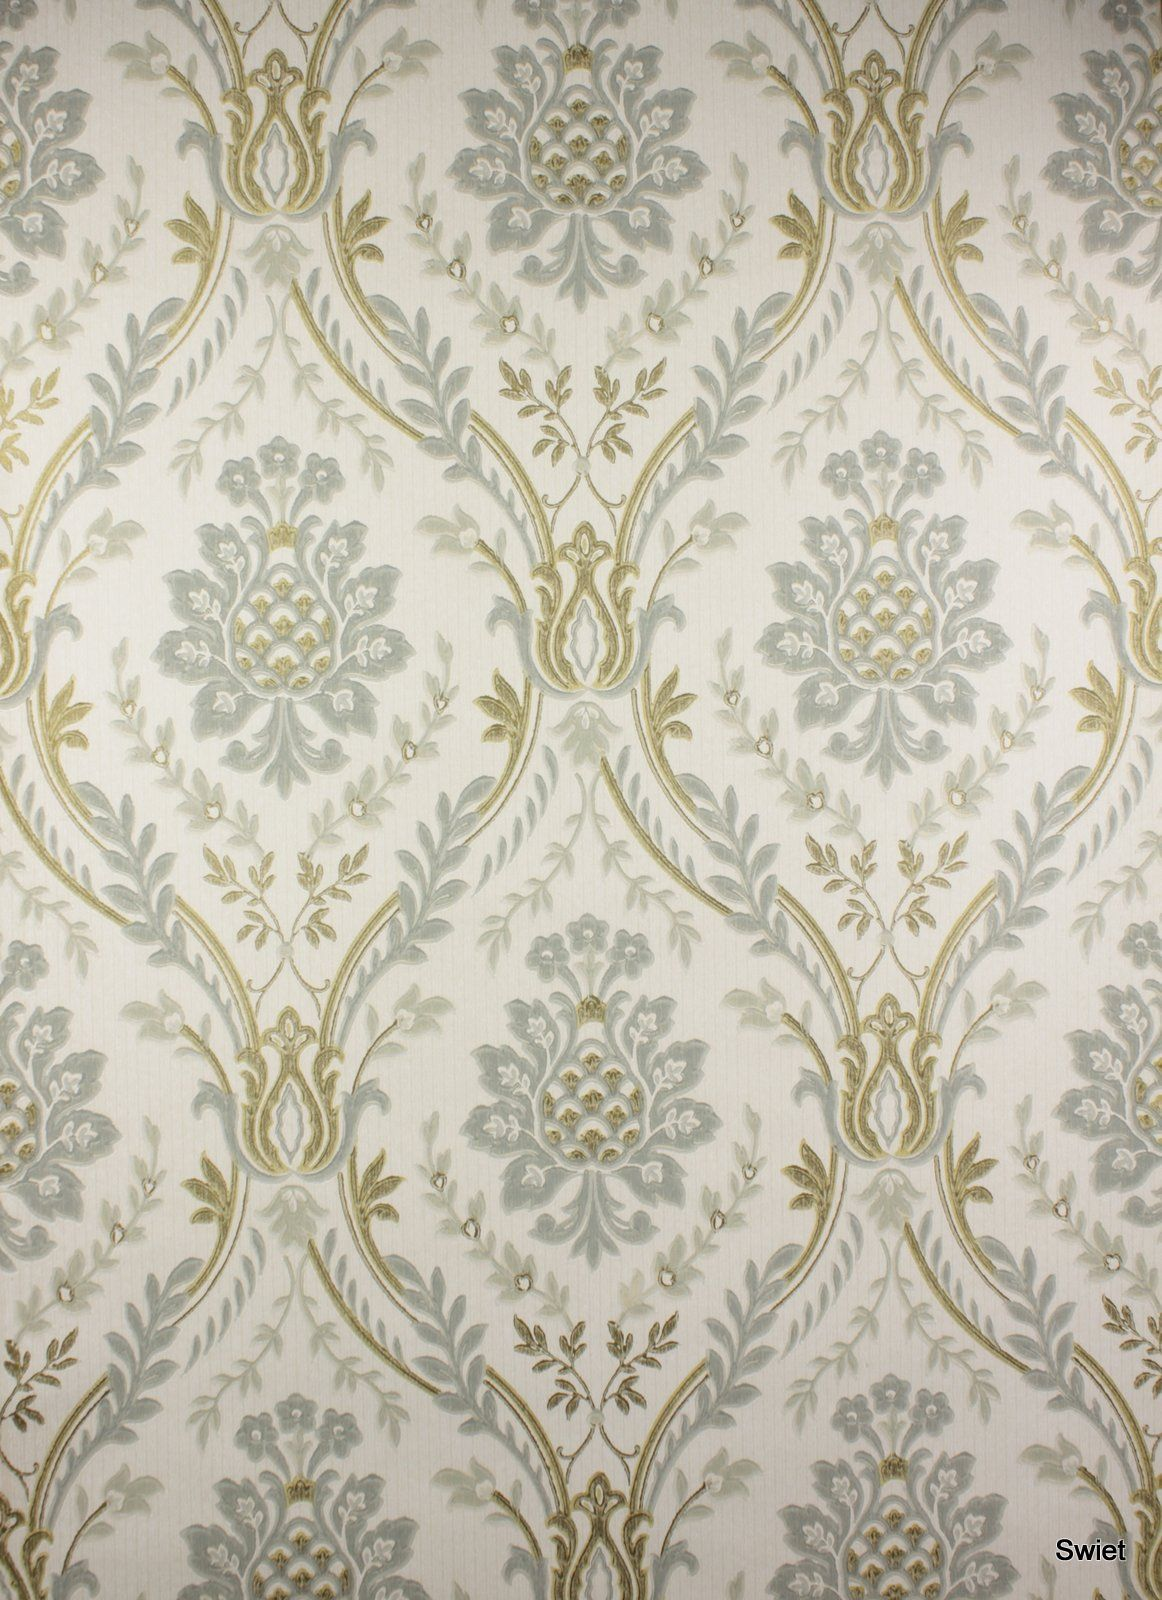 Swiet Behang Behang Swiet Damask 2019 Wallpaper Damask Ve Wall